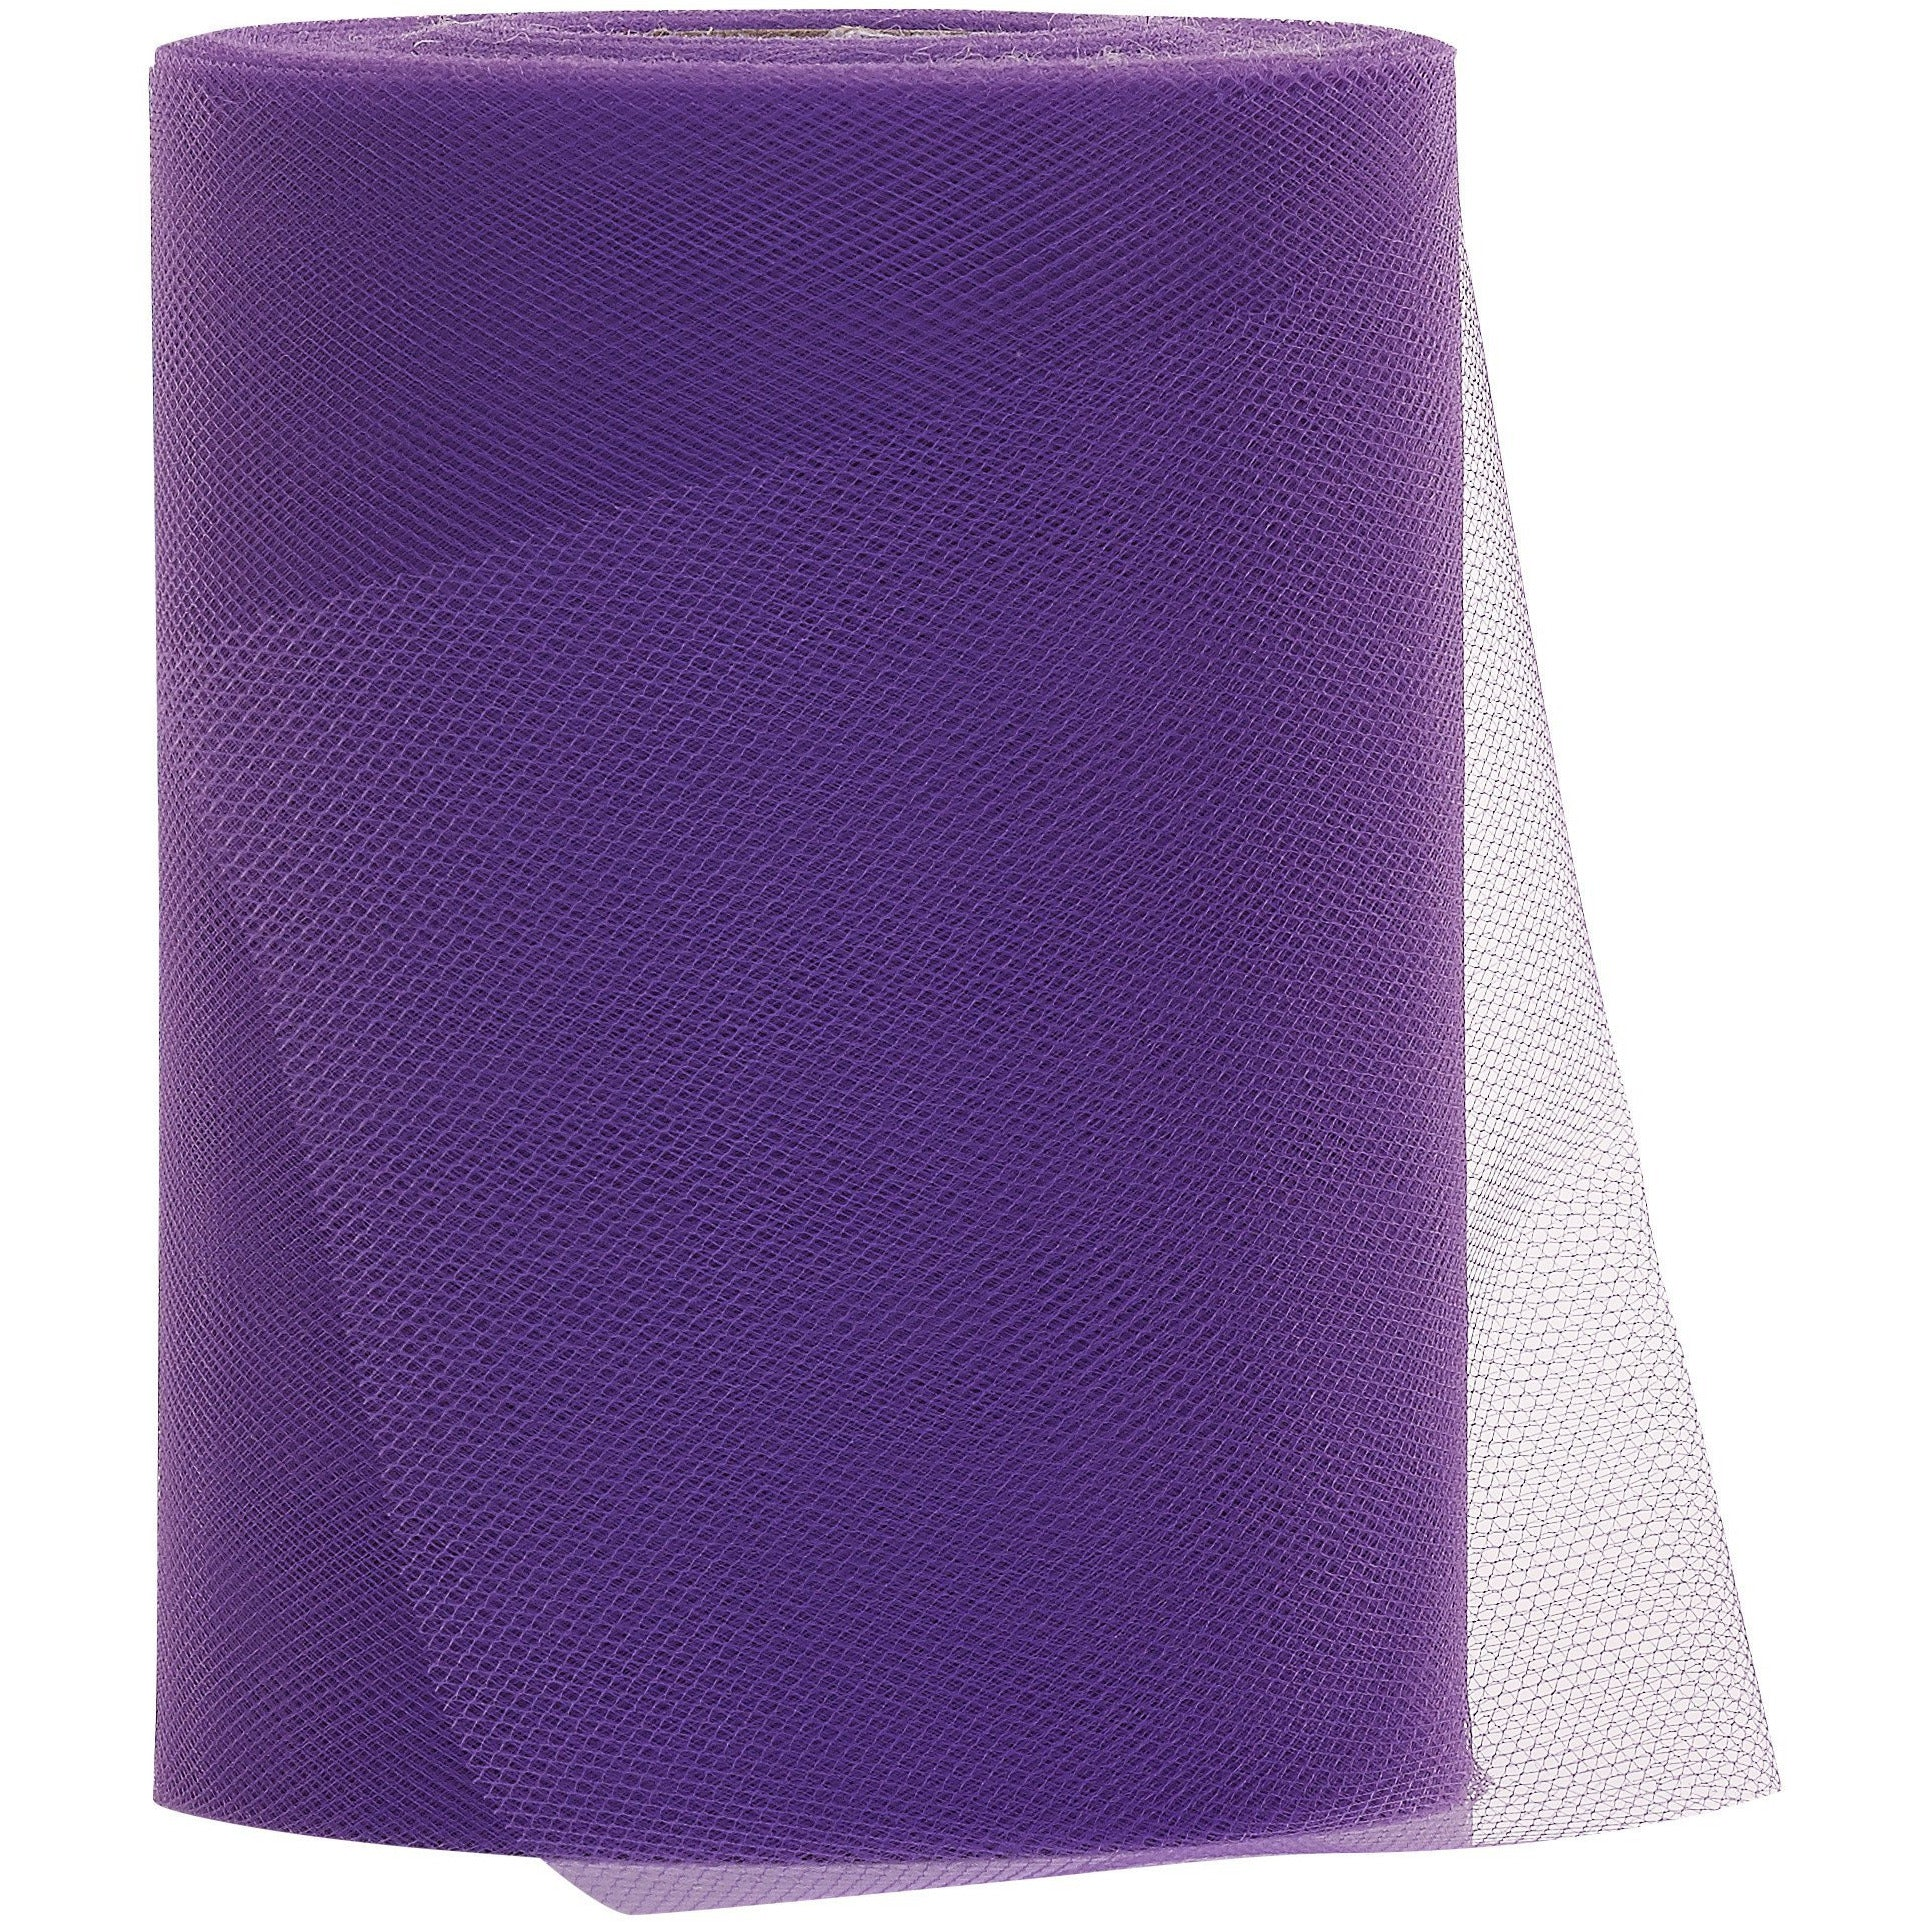 Purple Tulle Fabric Roll - 100 Yards